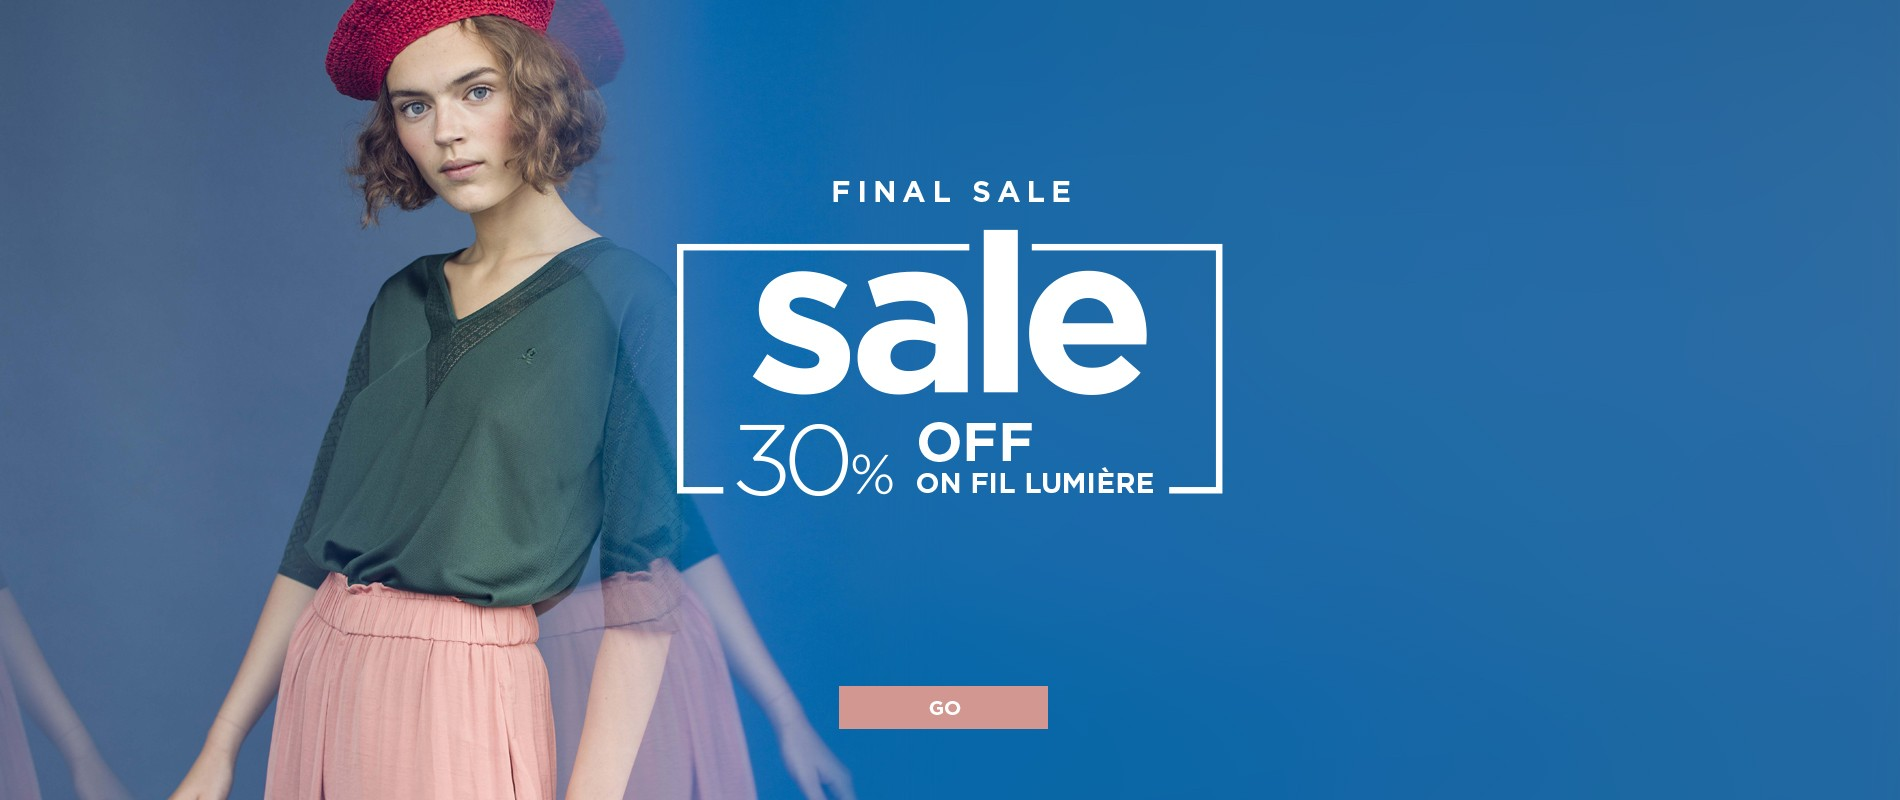 Summer Sales for our FIL LUMIERE !